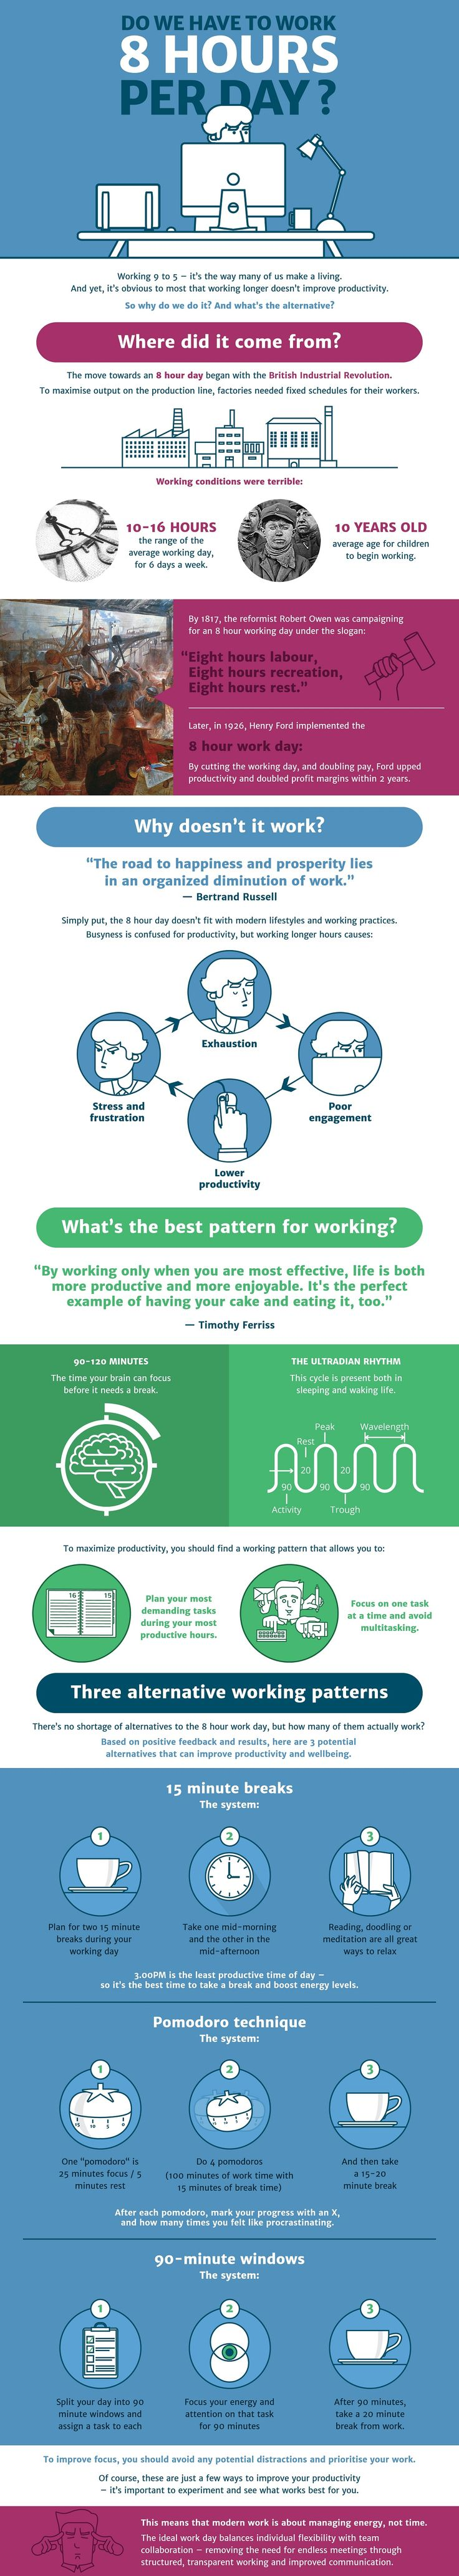 Infographic: The Eight-Hour Workday, And Why It Needs To End - DesignTAXI.com